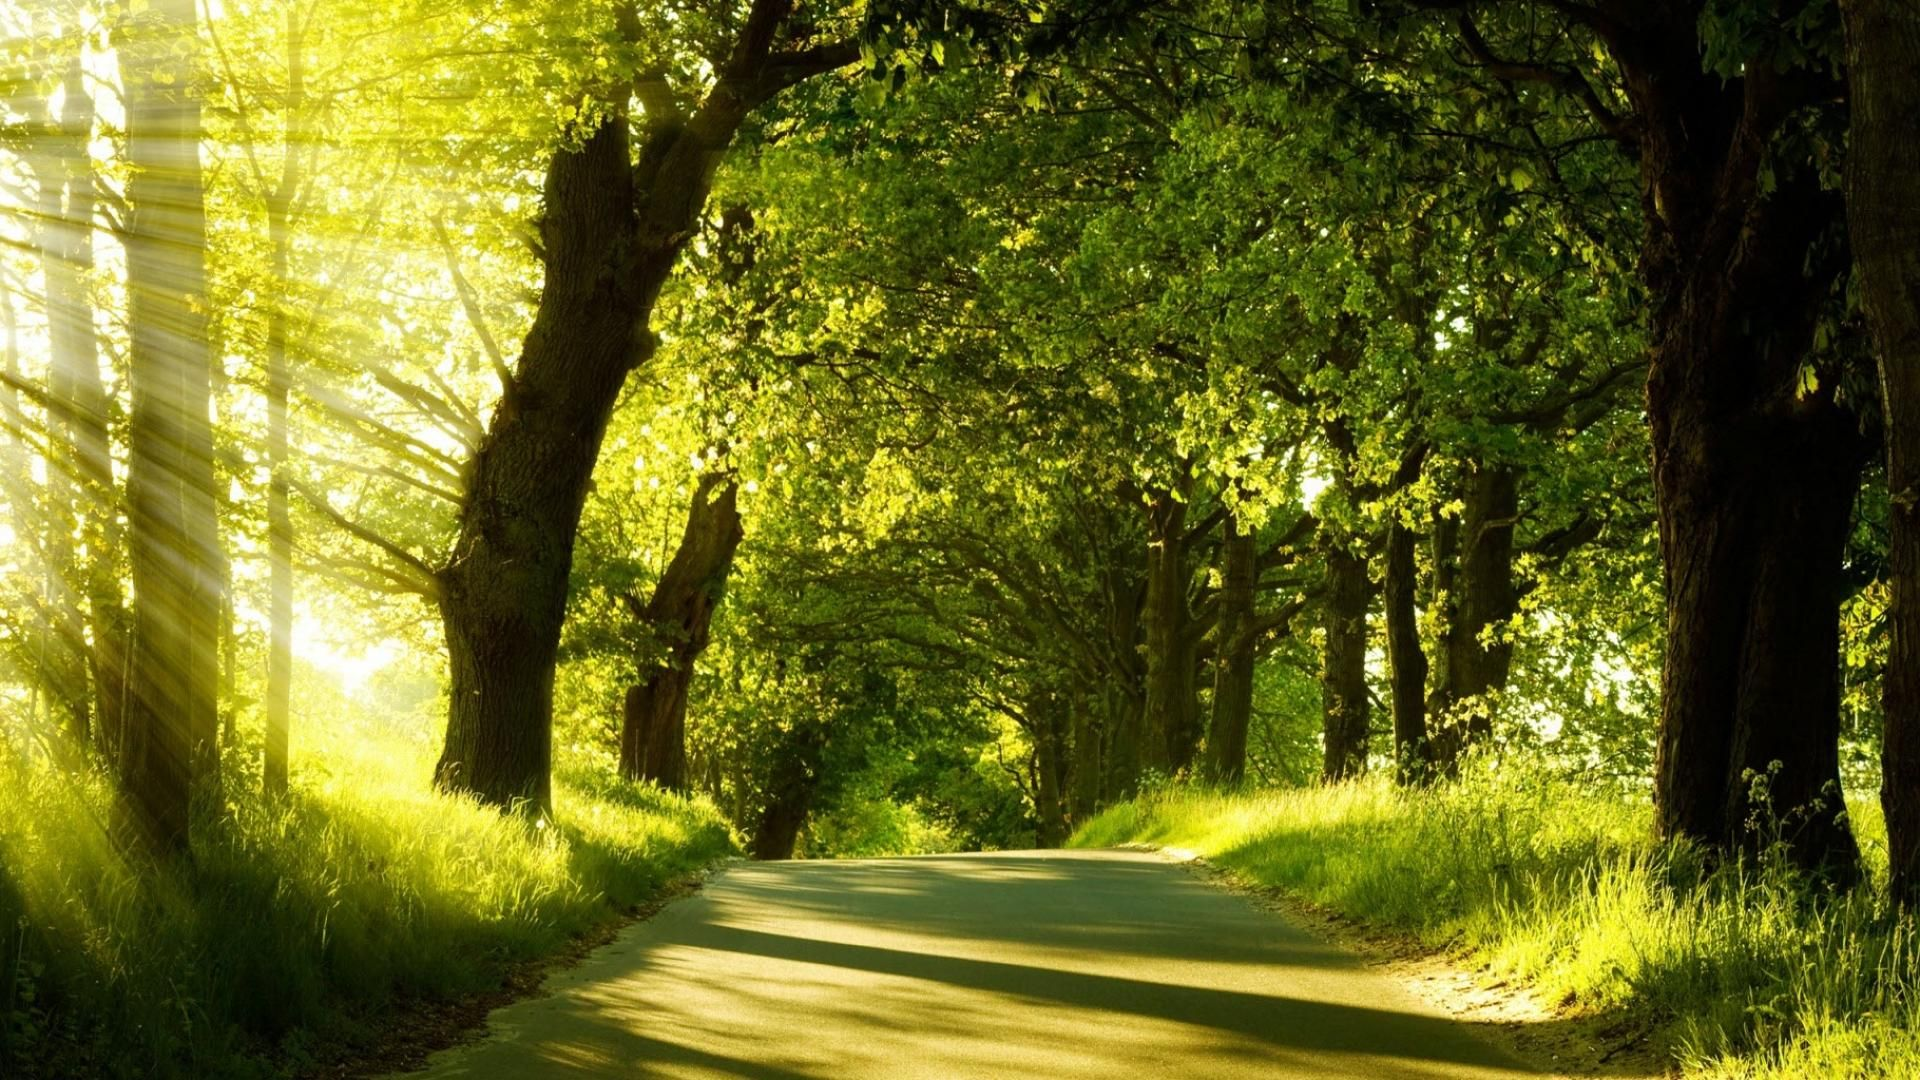 Nature Life Images 6 Hd Wallpapers Lzamgs Com Landscape Photography Trees Green Nature Forest Wallpaper